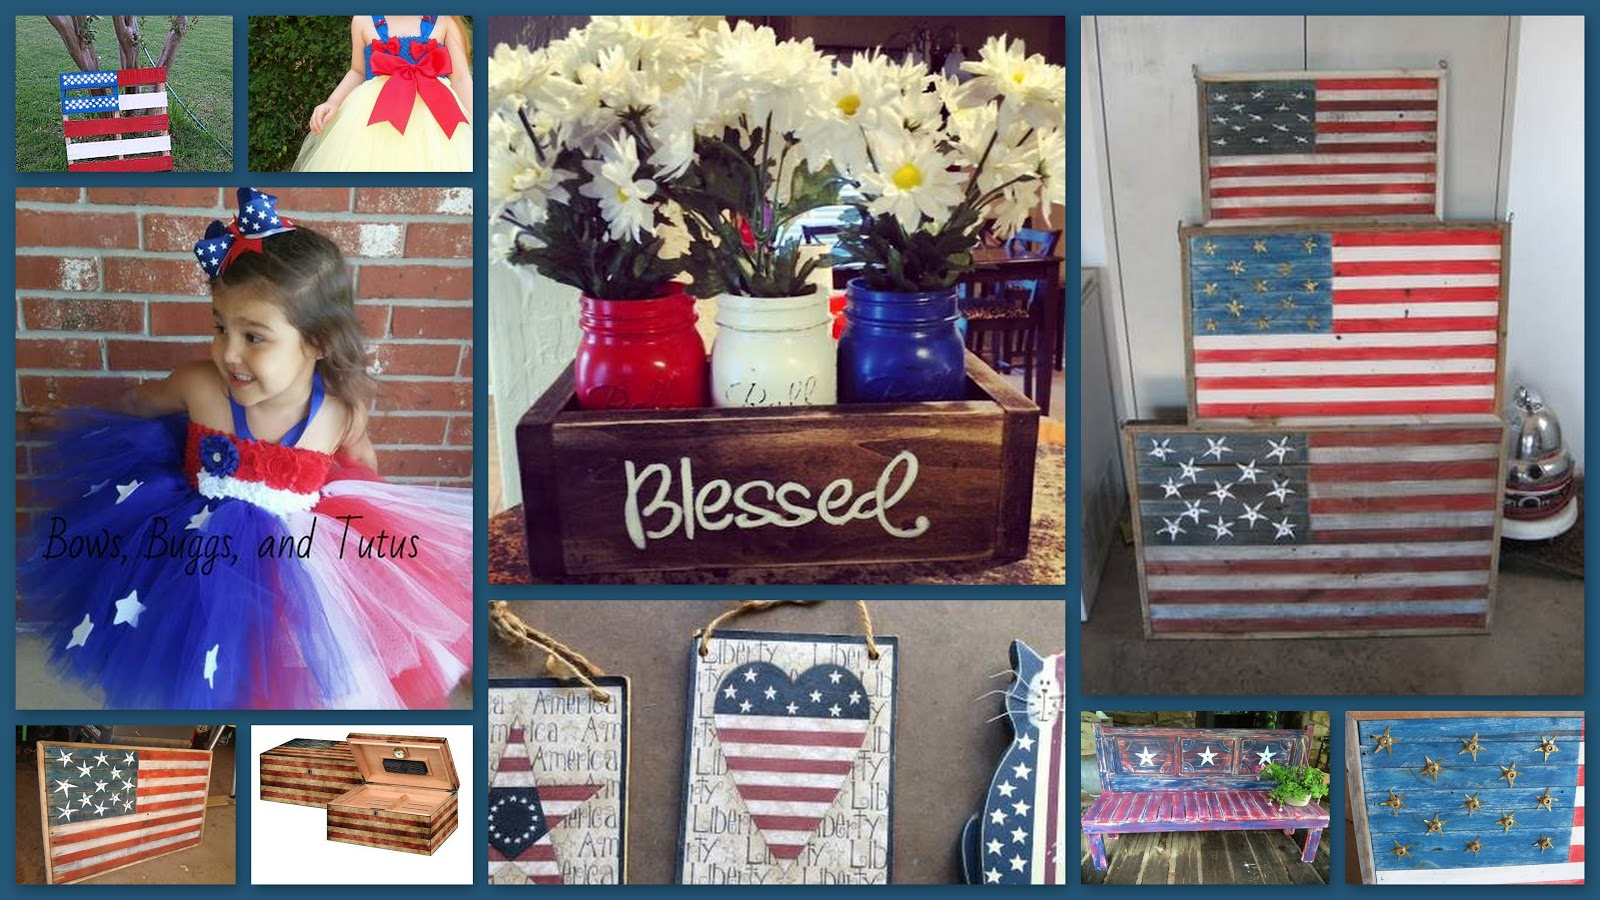 Buy Here Pay Here Okc >> 15 Craigslist finds packed with Rustic American charm | Craigslist Garage Sales - Oklahoma City